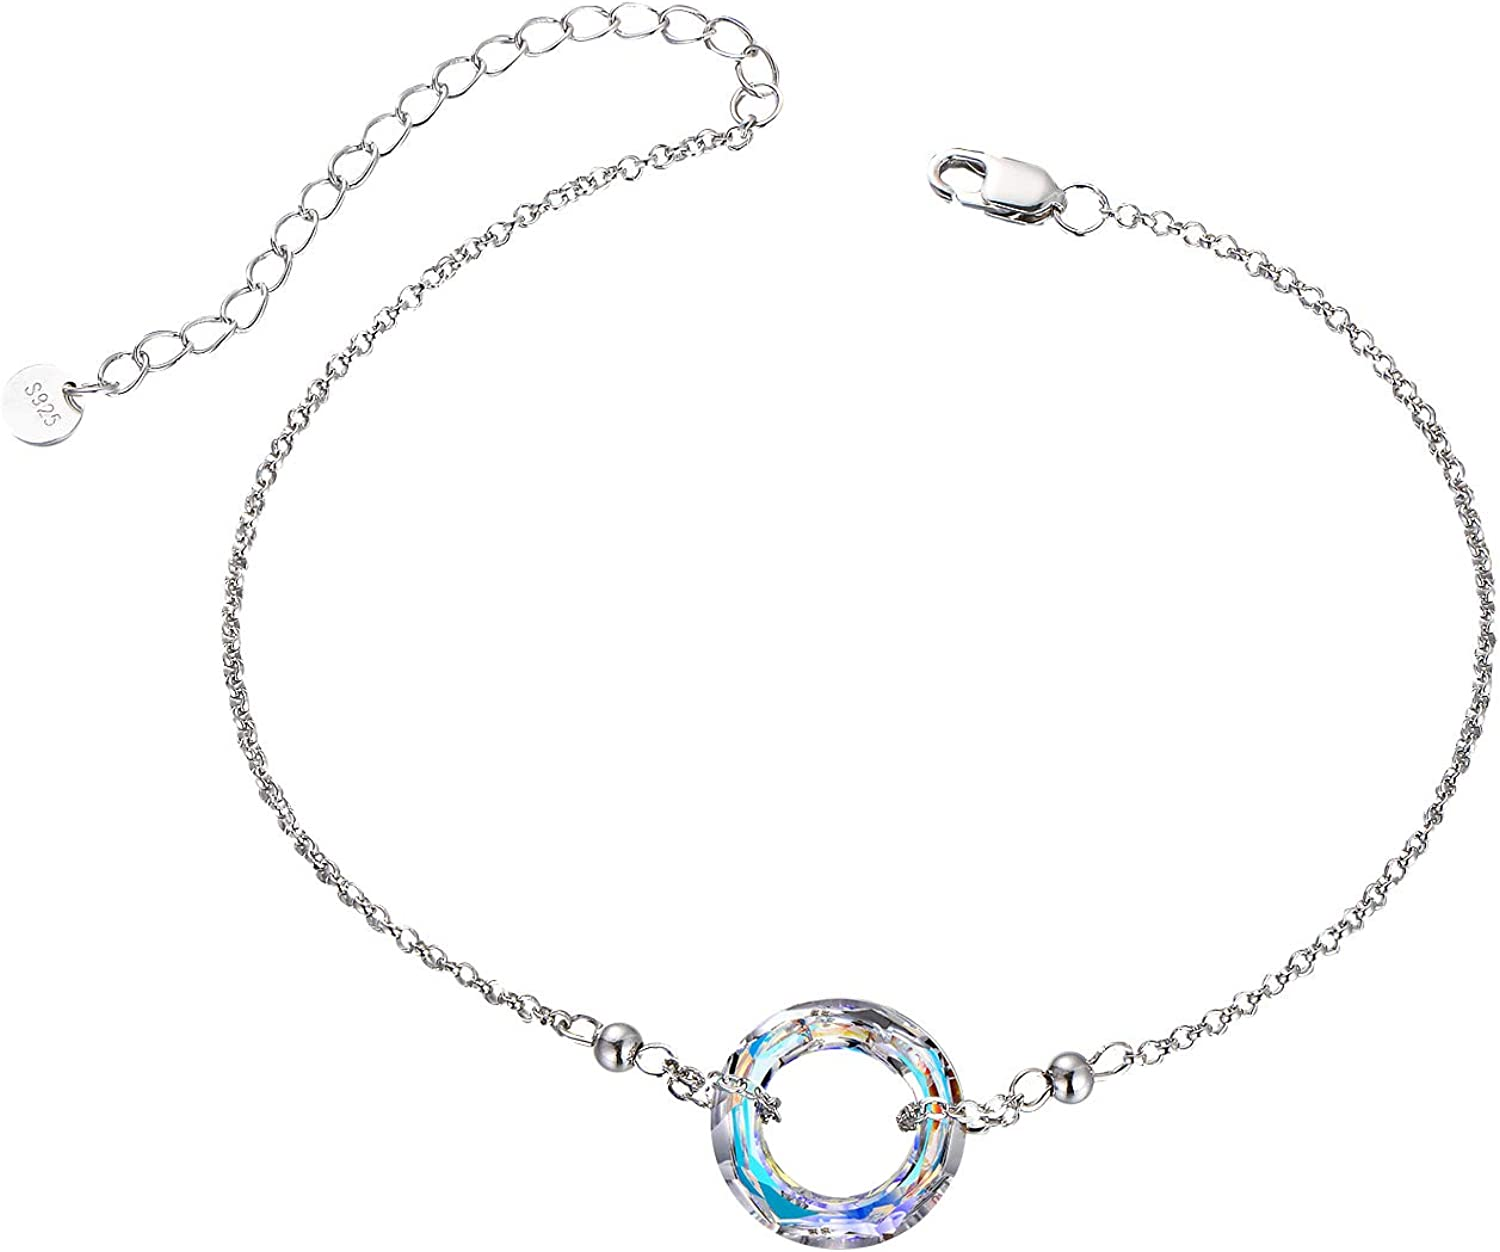 Crystals from Swarovski Anniversary Birthday Jewelry Gifts for Lovely Ladies Love and Hope Series AOBOCO Sterling Silver Bracelet for Women